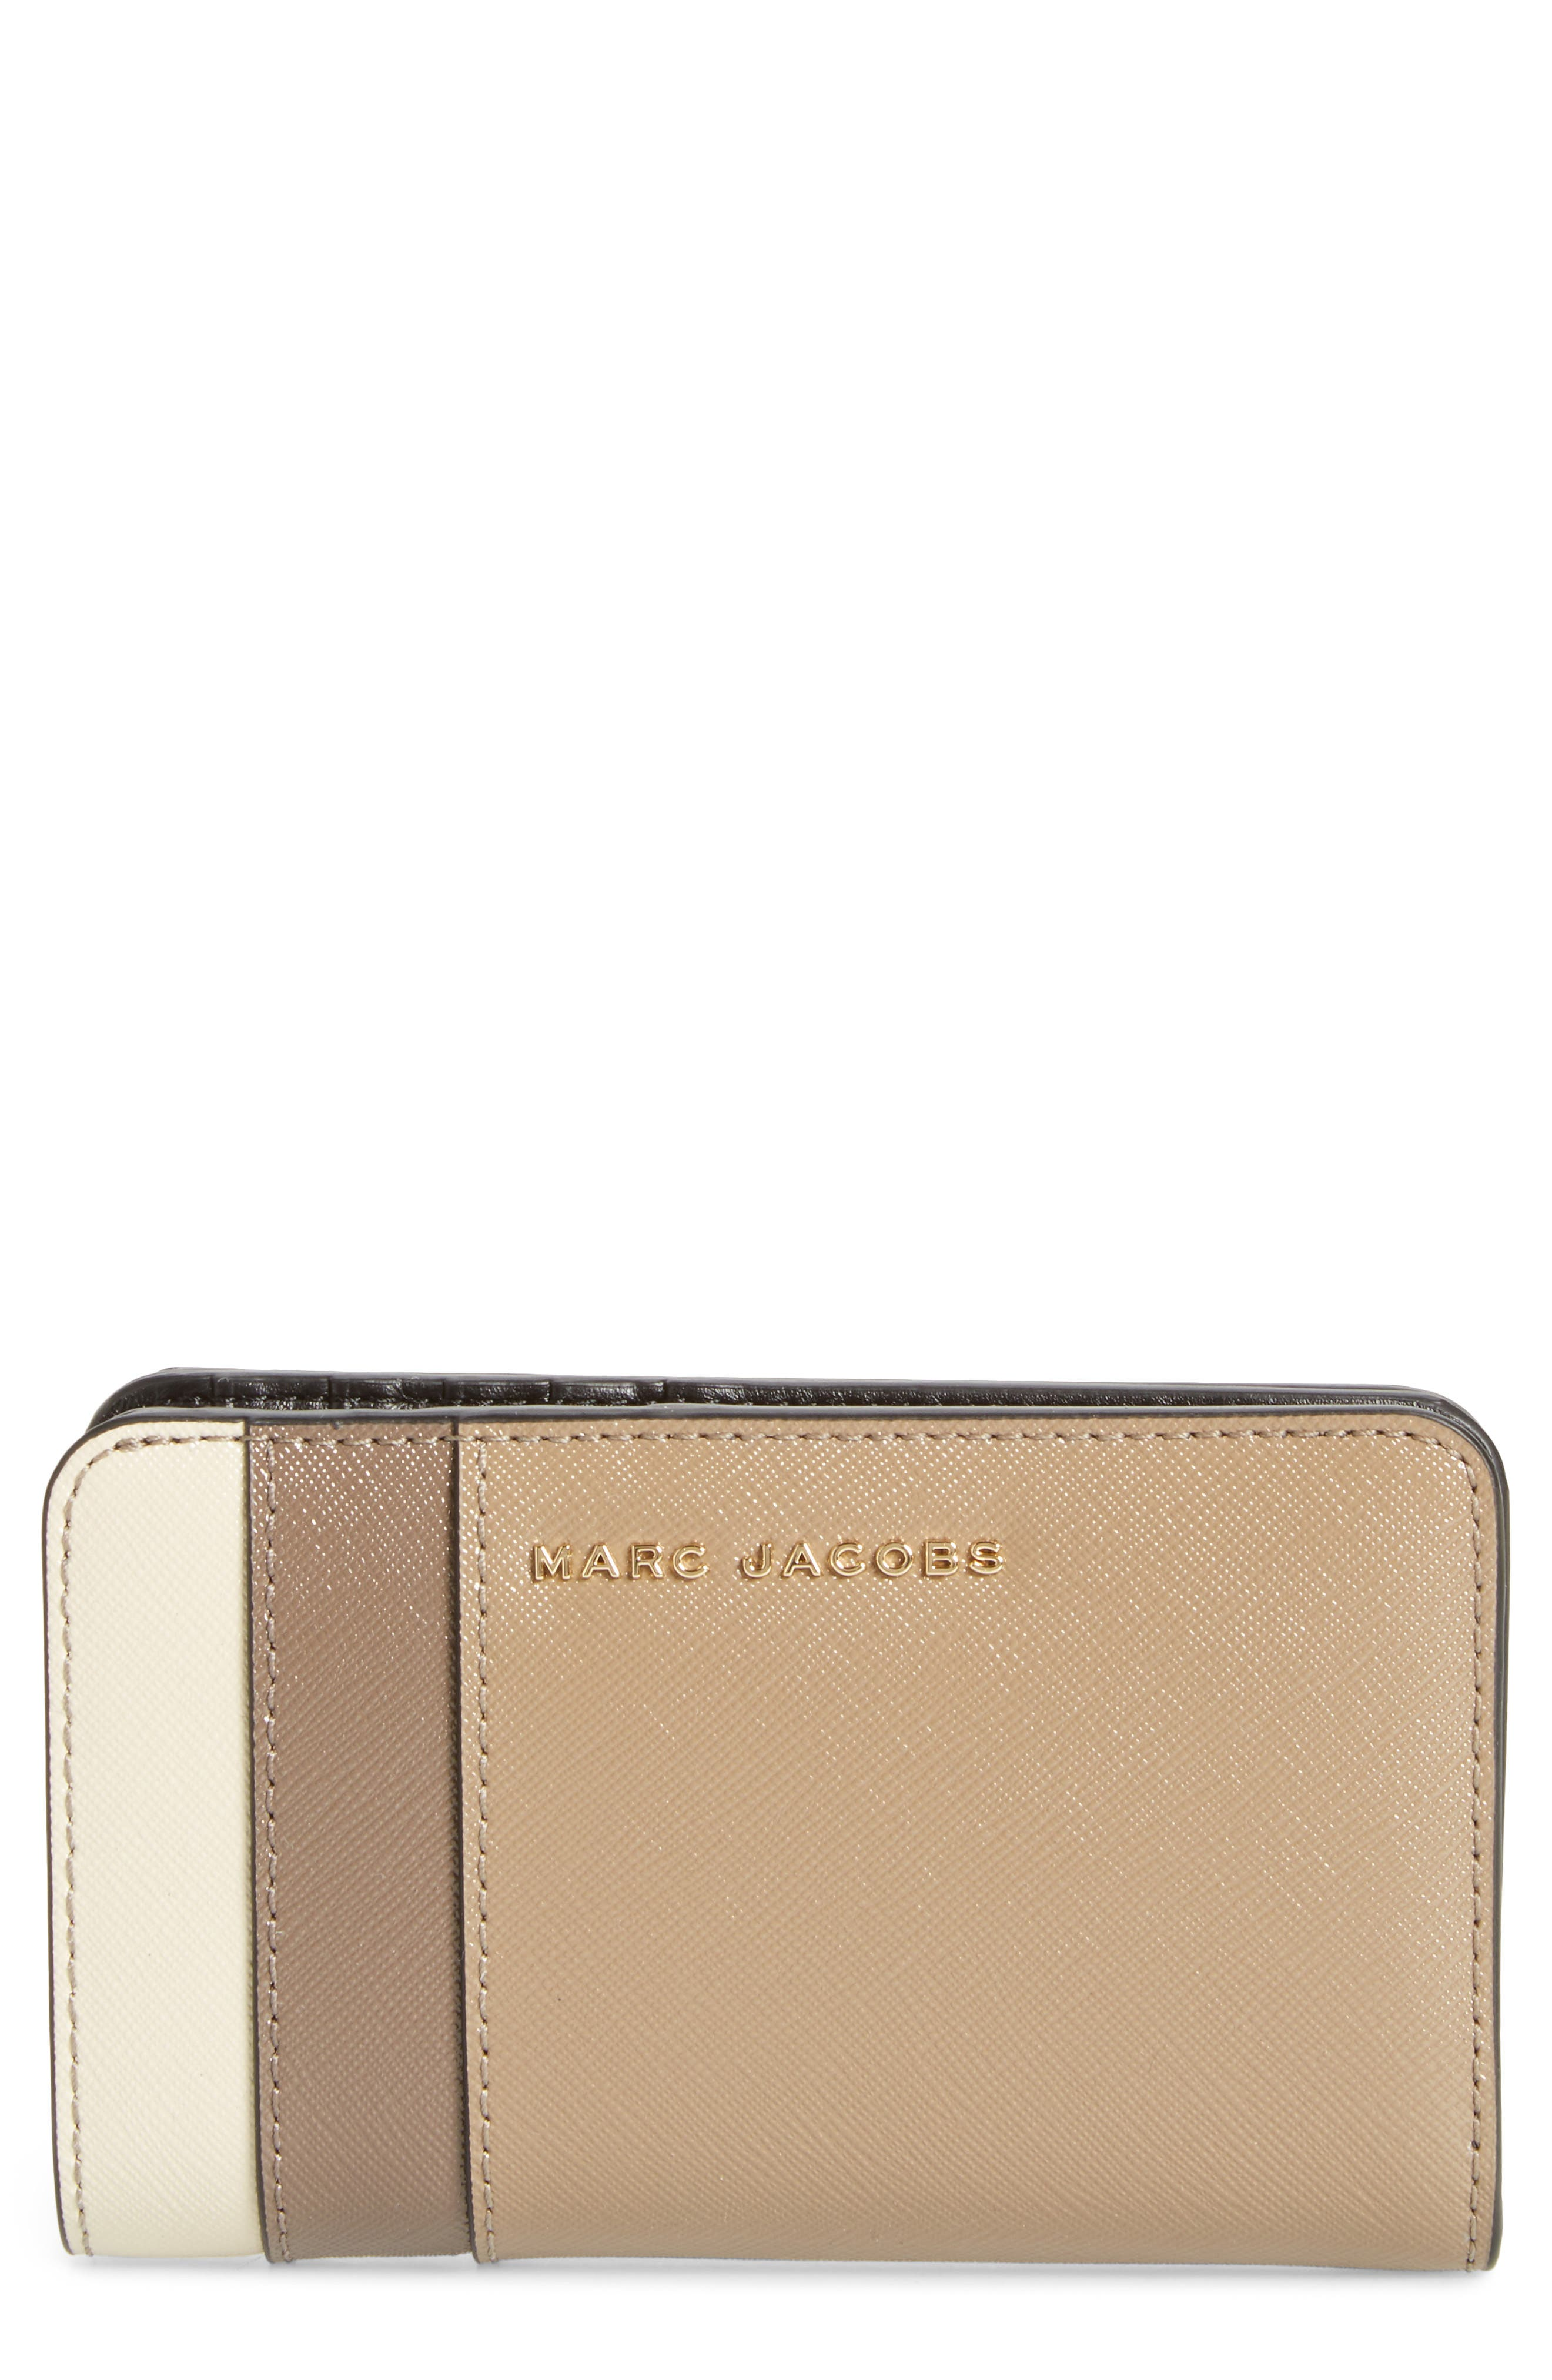 Saffiano Leather Compact Wallet,                             Main thumbnail 2, color,